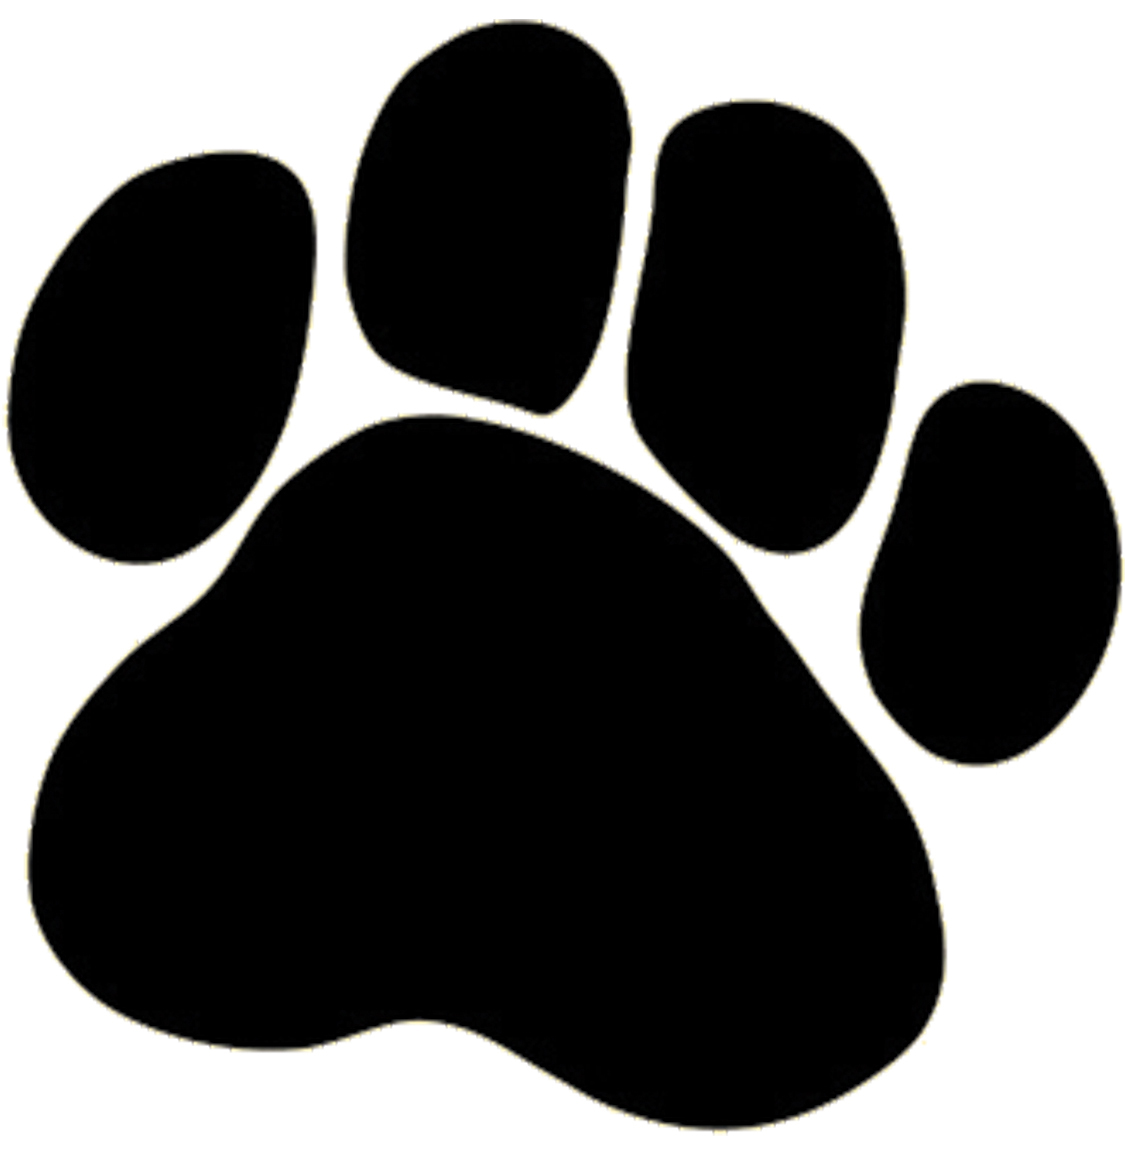 1125x1149 Dog Paw Print Clip Art Paw Print Graphics For Projects Dog Image